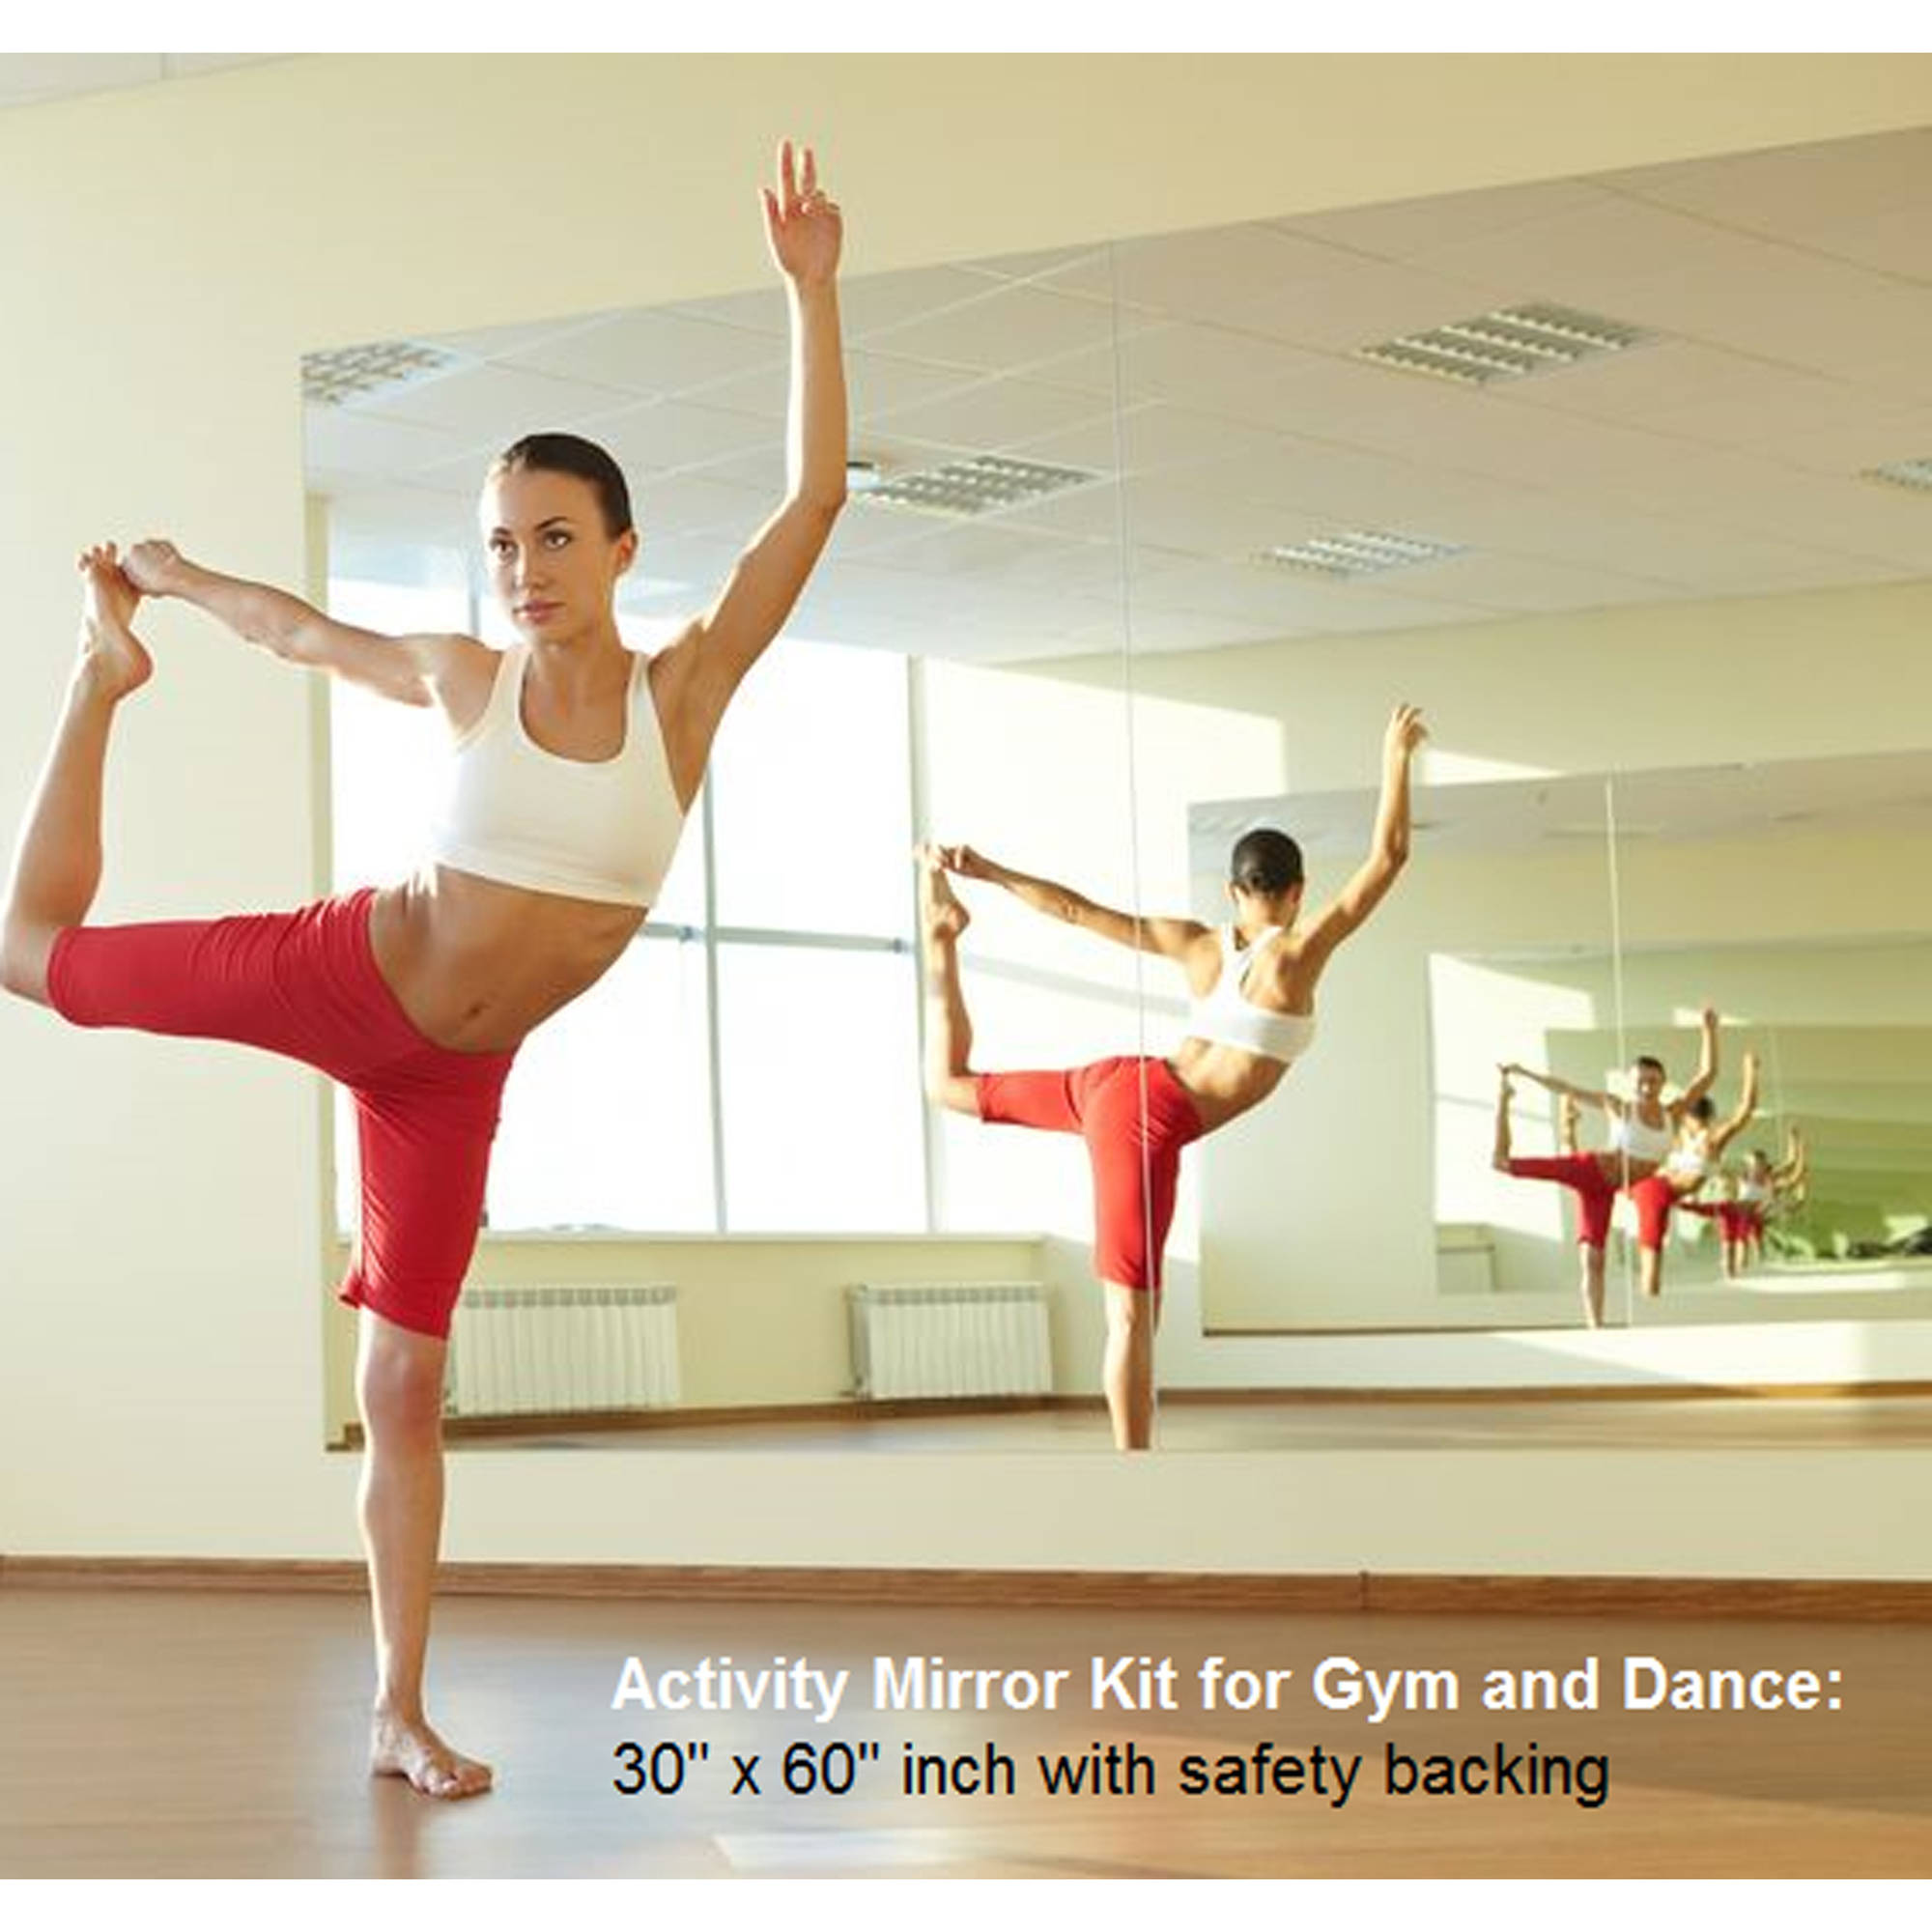 Activity Mirror Kit for Gym and Dance different Size Available with Safety Backing